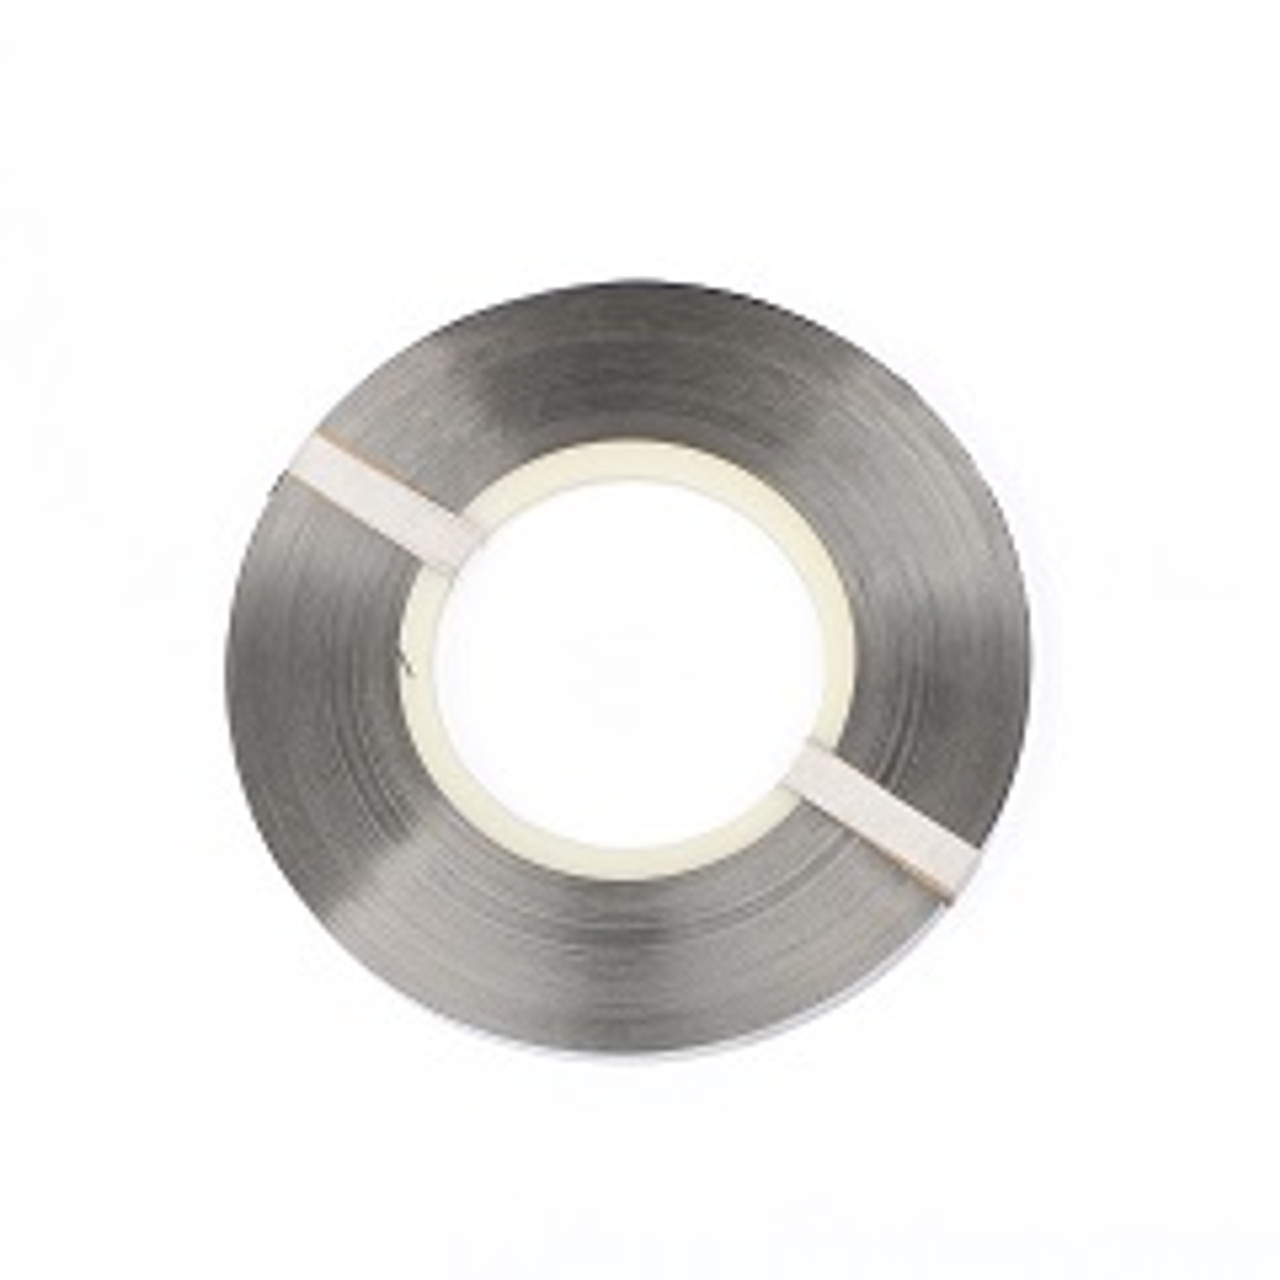 0.1x5mm 1kg(approx. 700ft) Pure Nickel Strip for High Capacity 18650 Lithium Battery Packs